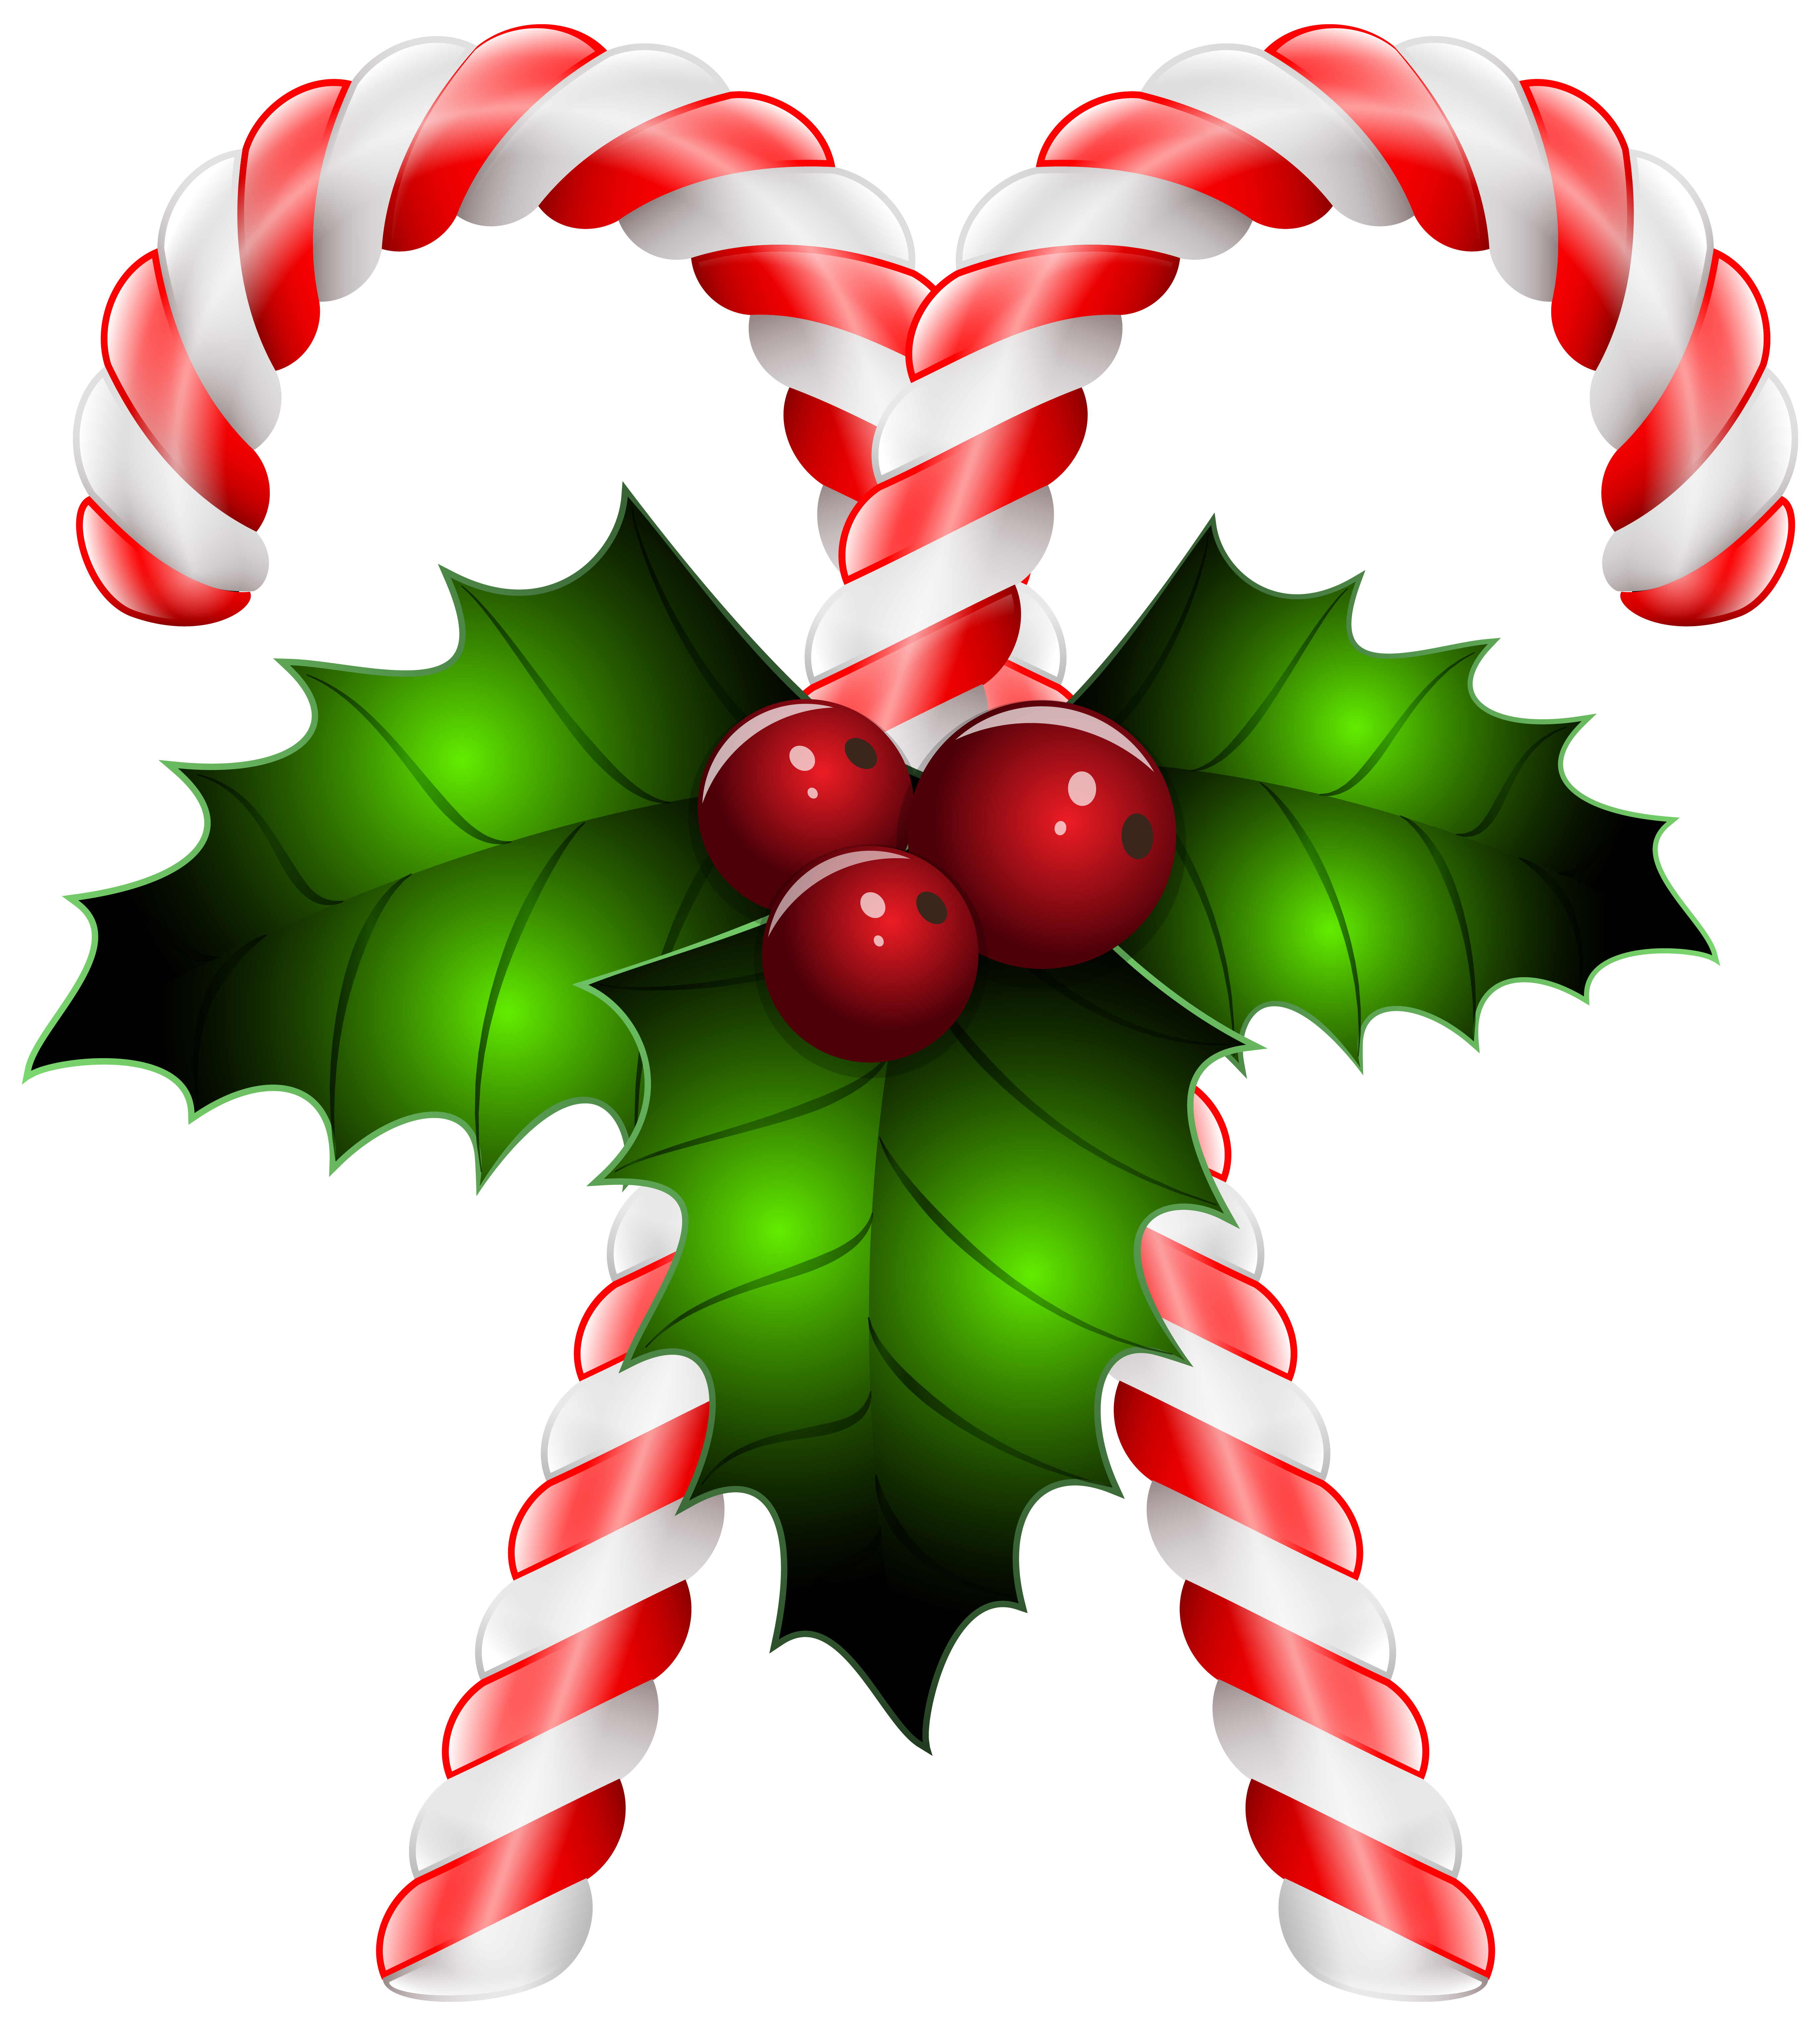 graphic royalty free download Marvellous design candy christmas. Cane clipart three.